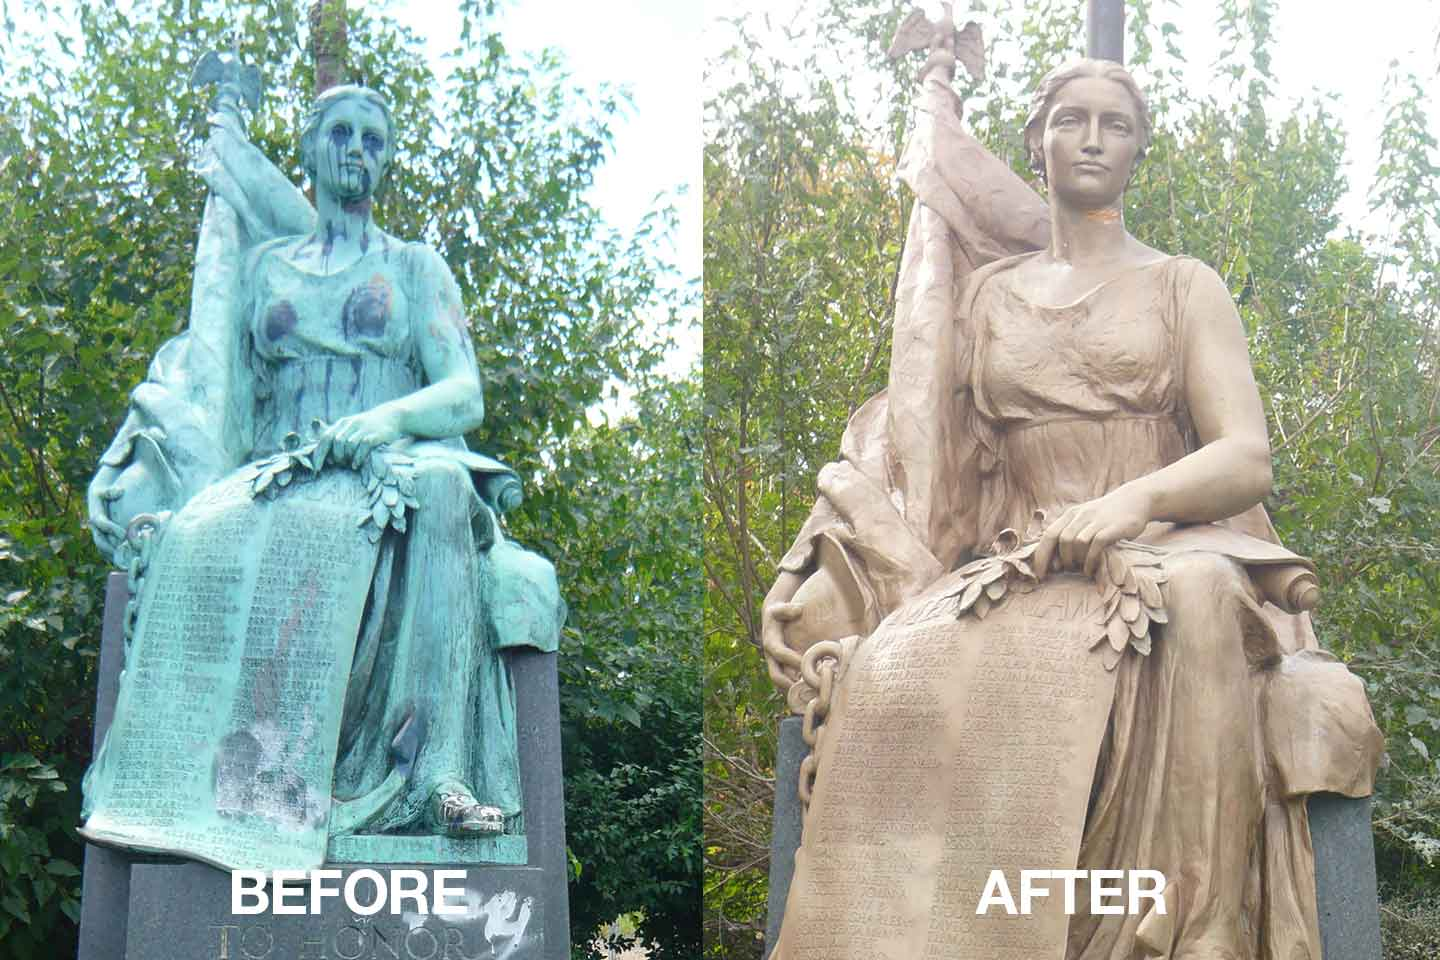 East_Orange_nj_Farrow_Cleaning_Before_After